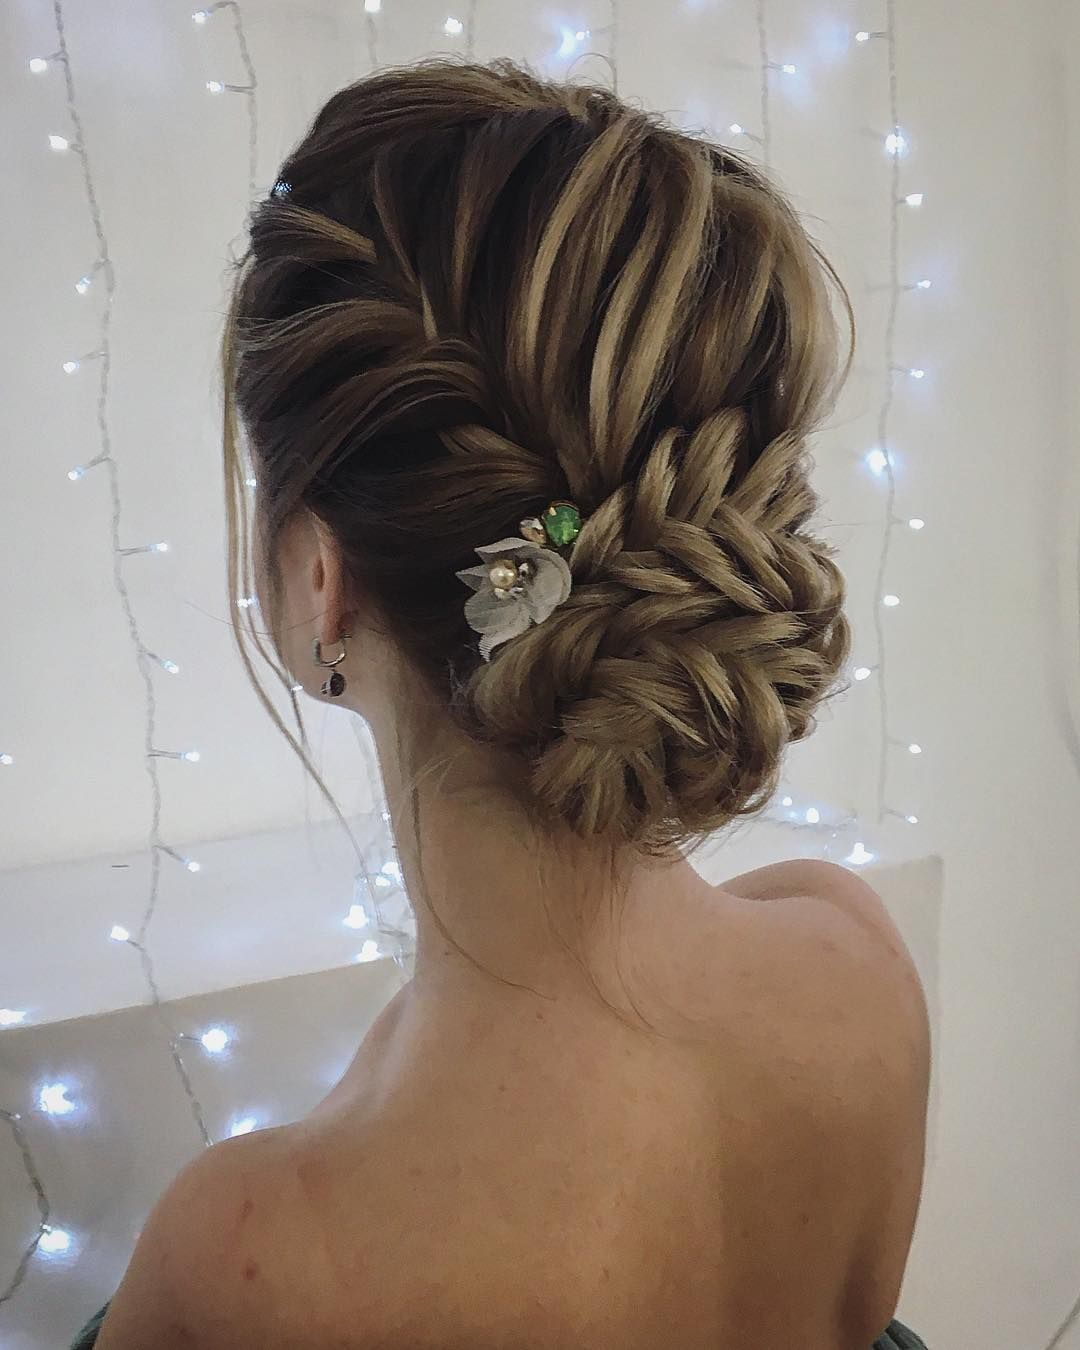 Bun Hairstyles Unique Updo Hairstyle  High Bun Hairstyle Prom Hairstyles Wedding